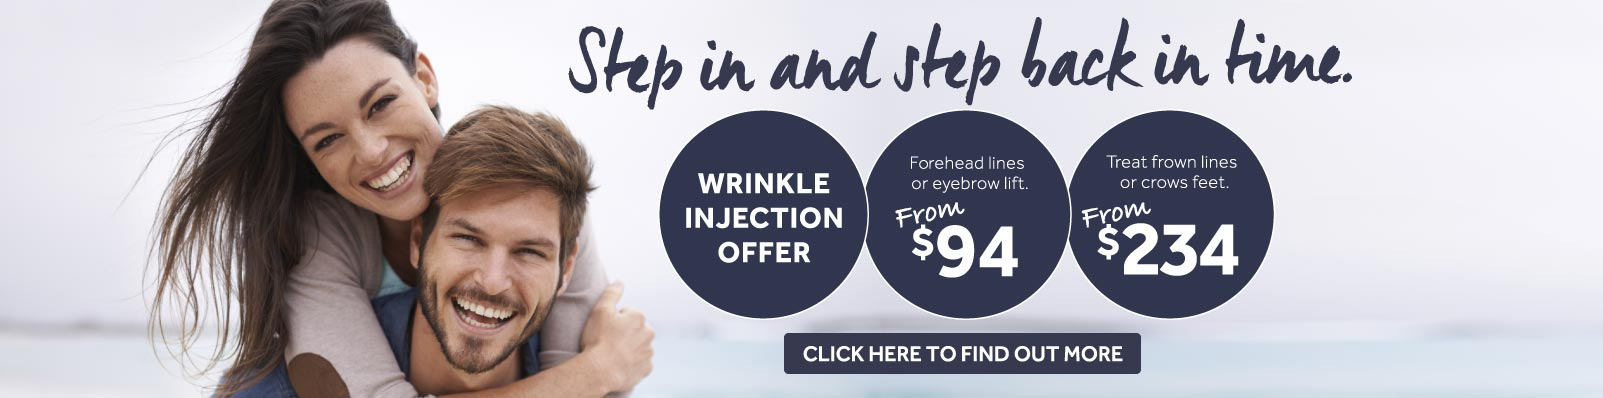 Sydney Cosmetic Injections Specials Banner